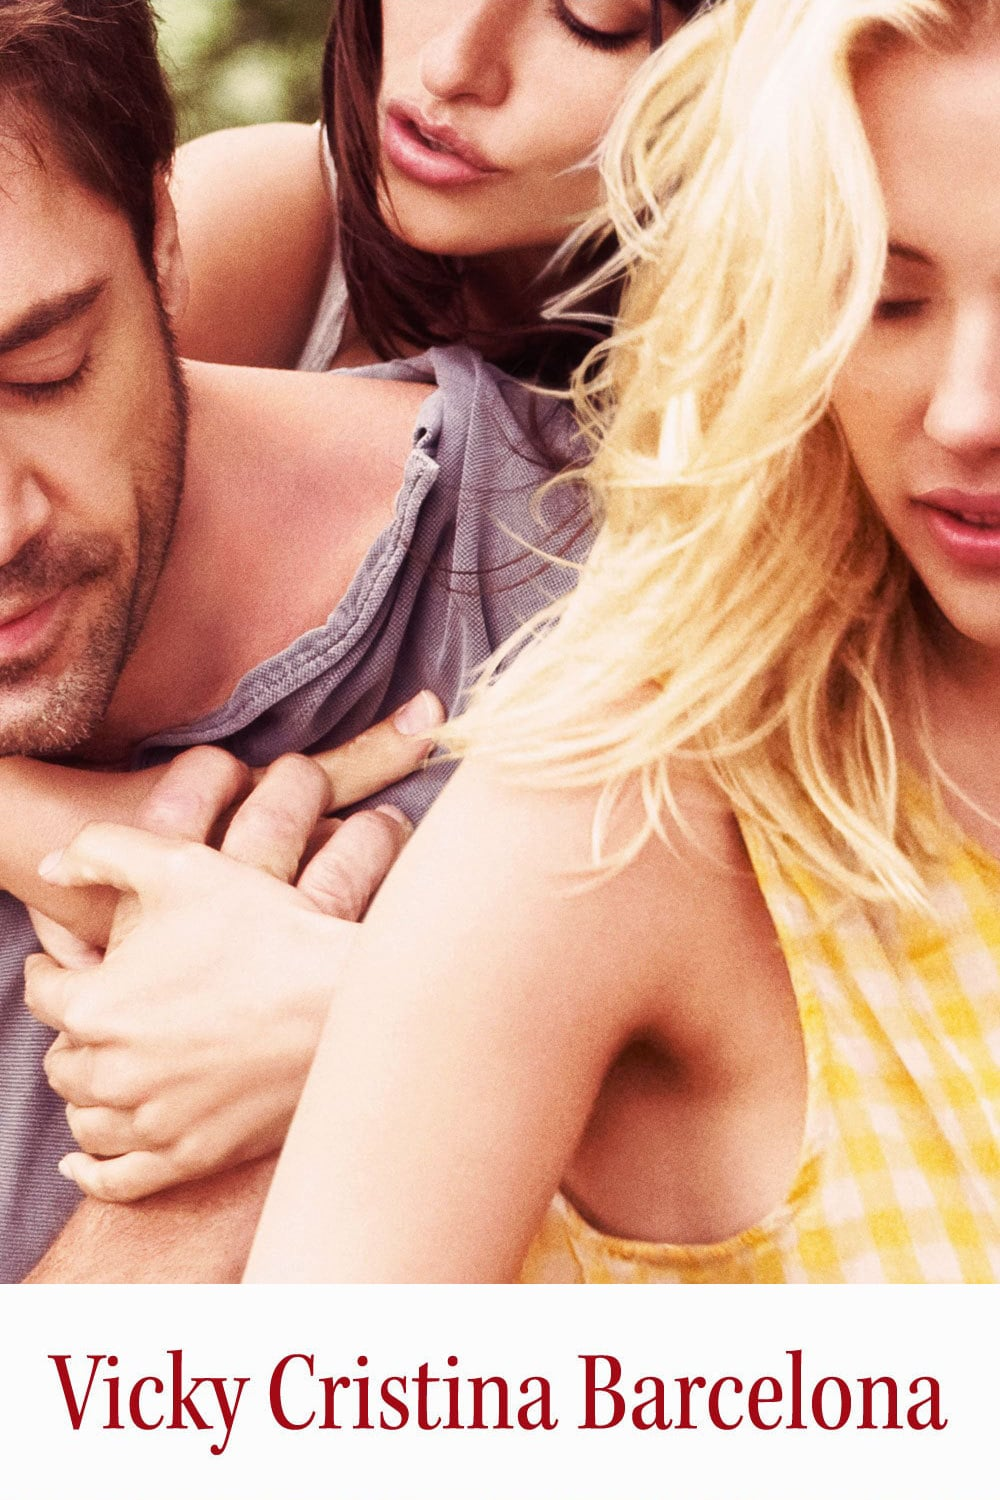 Vicky Cristina Barcelona Movie Streaming Online